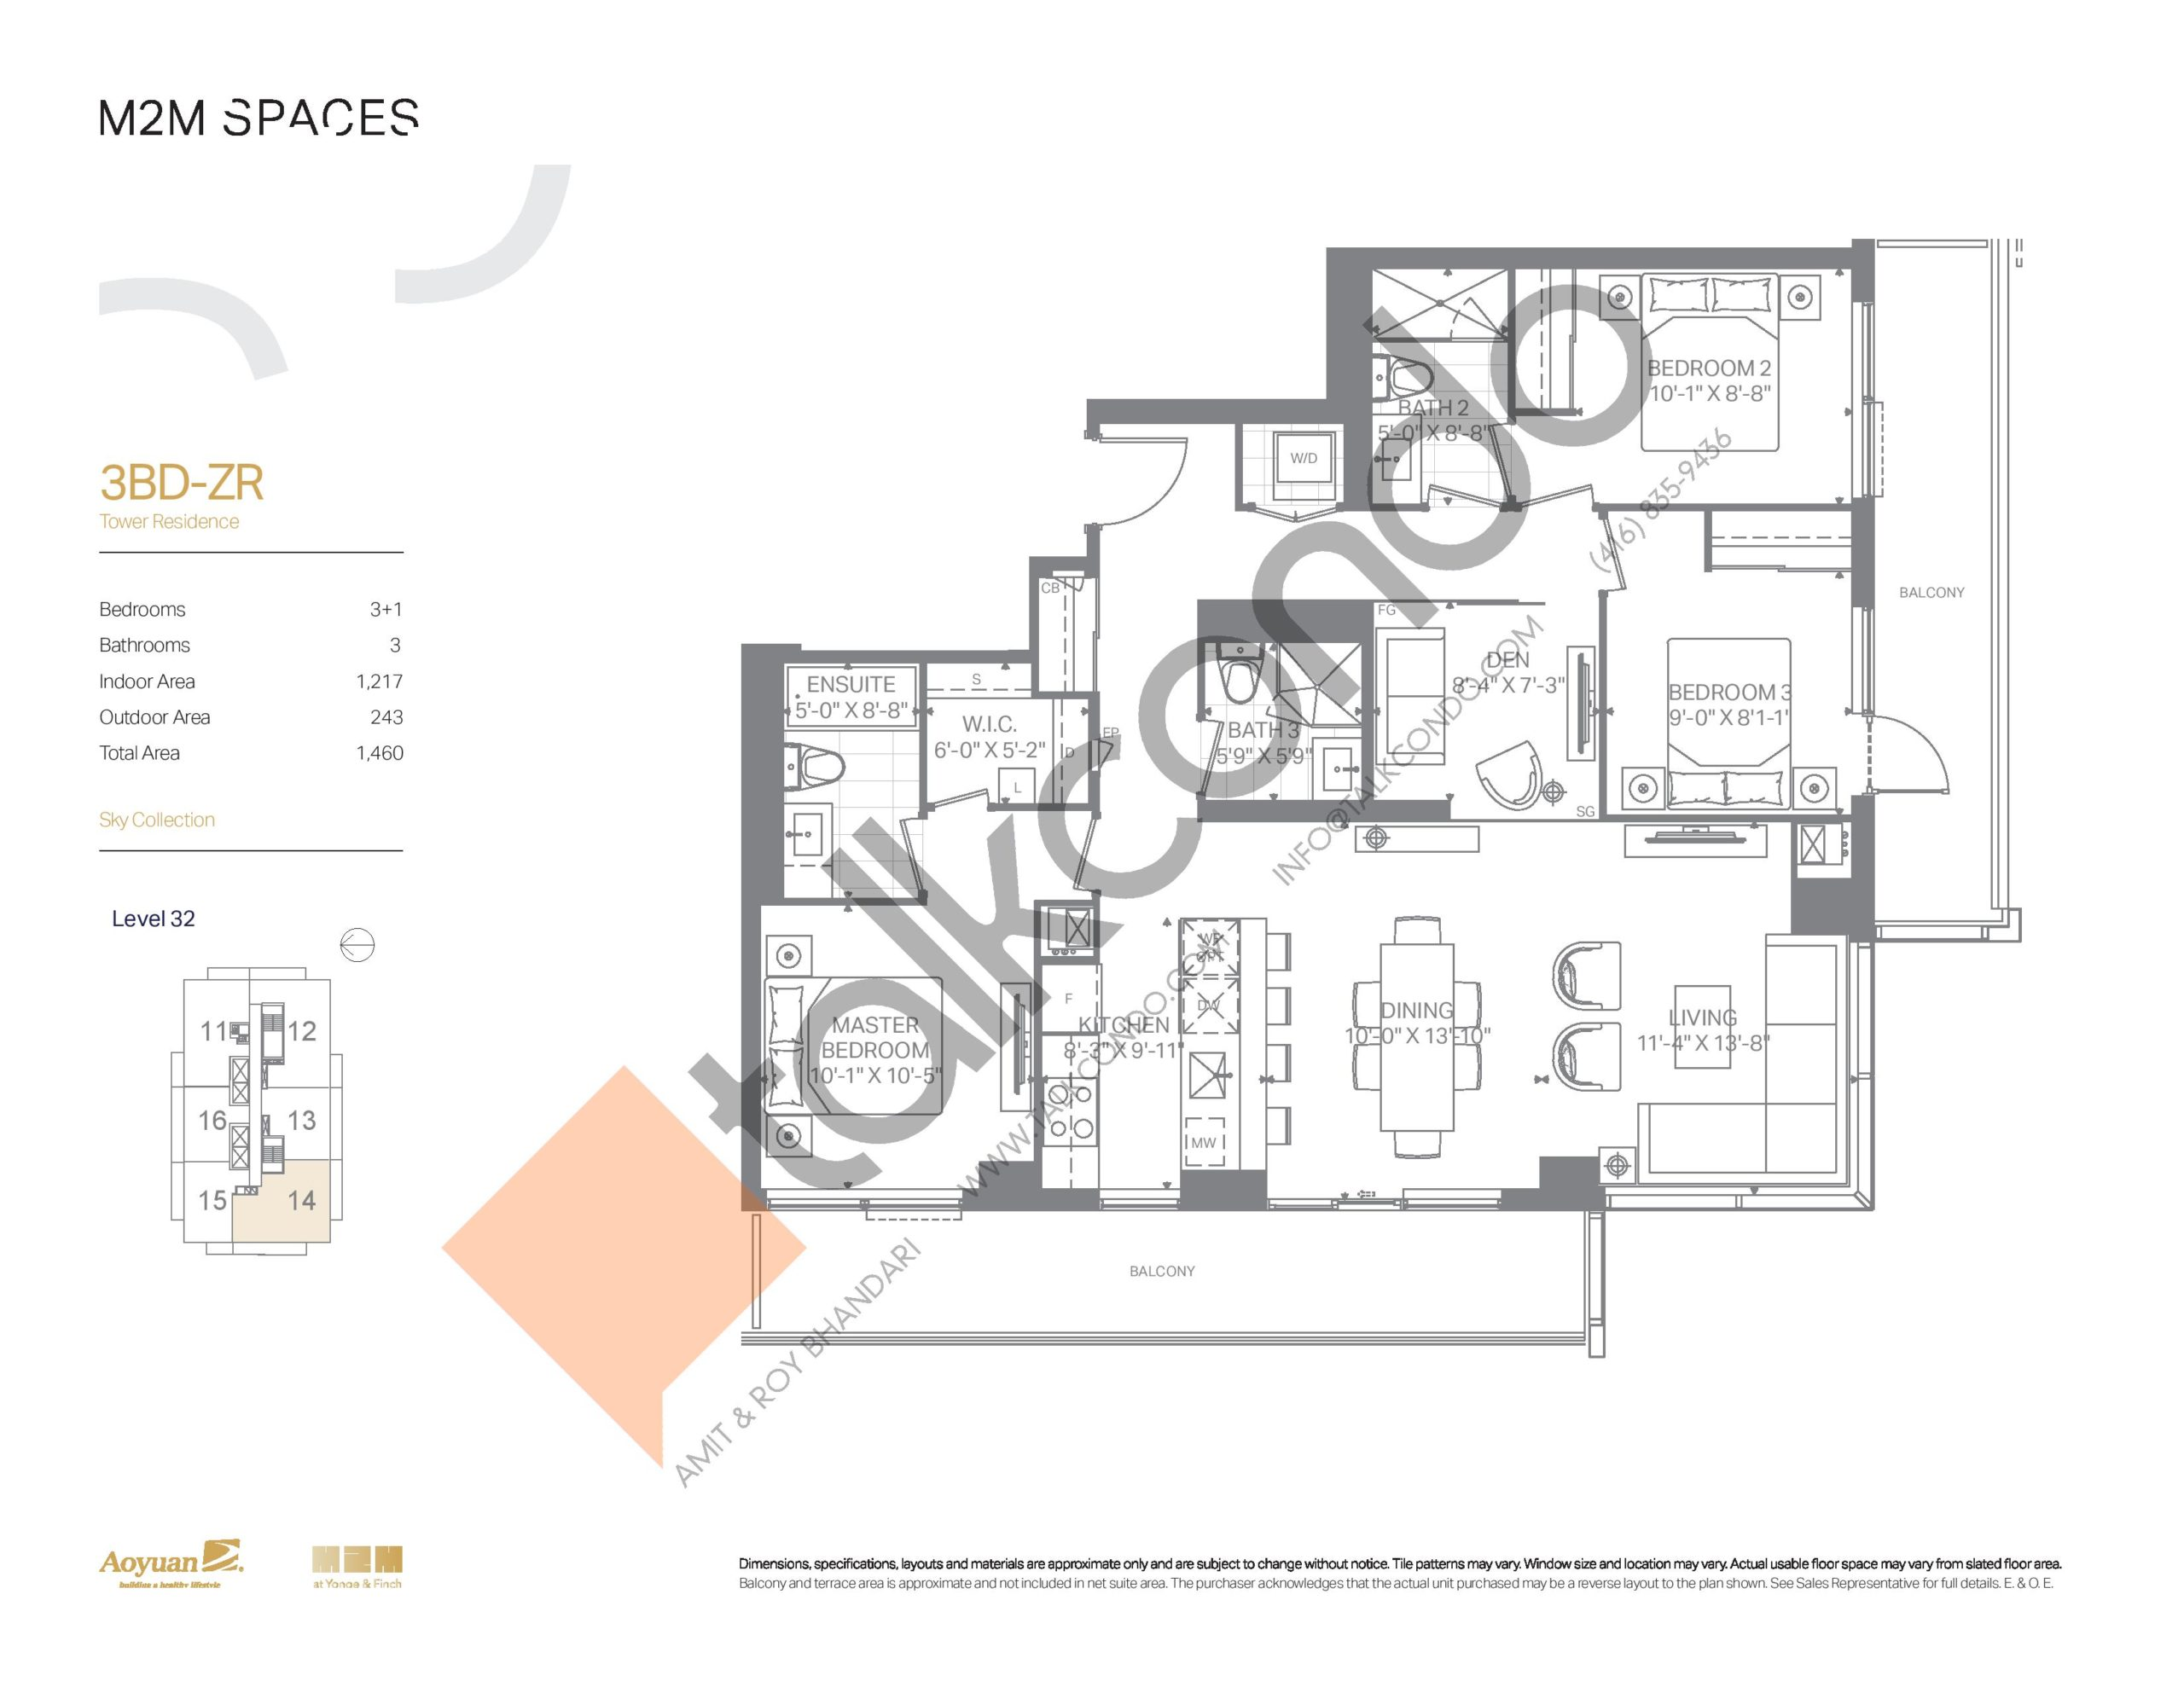 3BD-ZR (Sky Collection) Floor Plan at M2M Spaces Condos - 1217 sq.ft